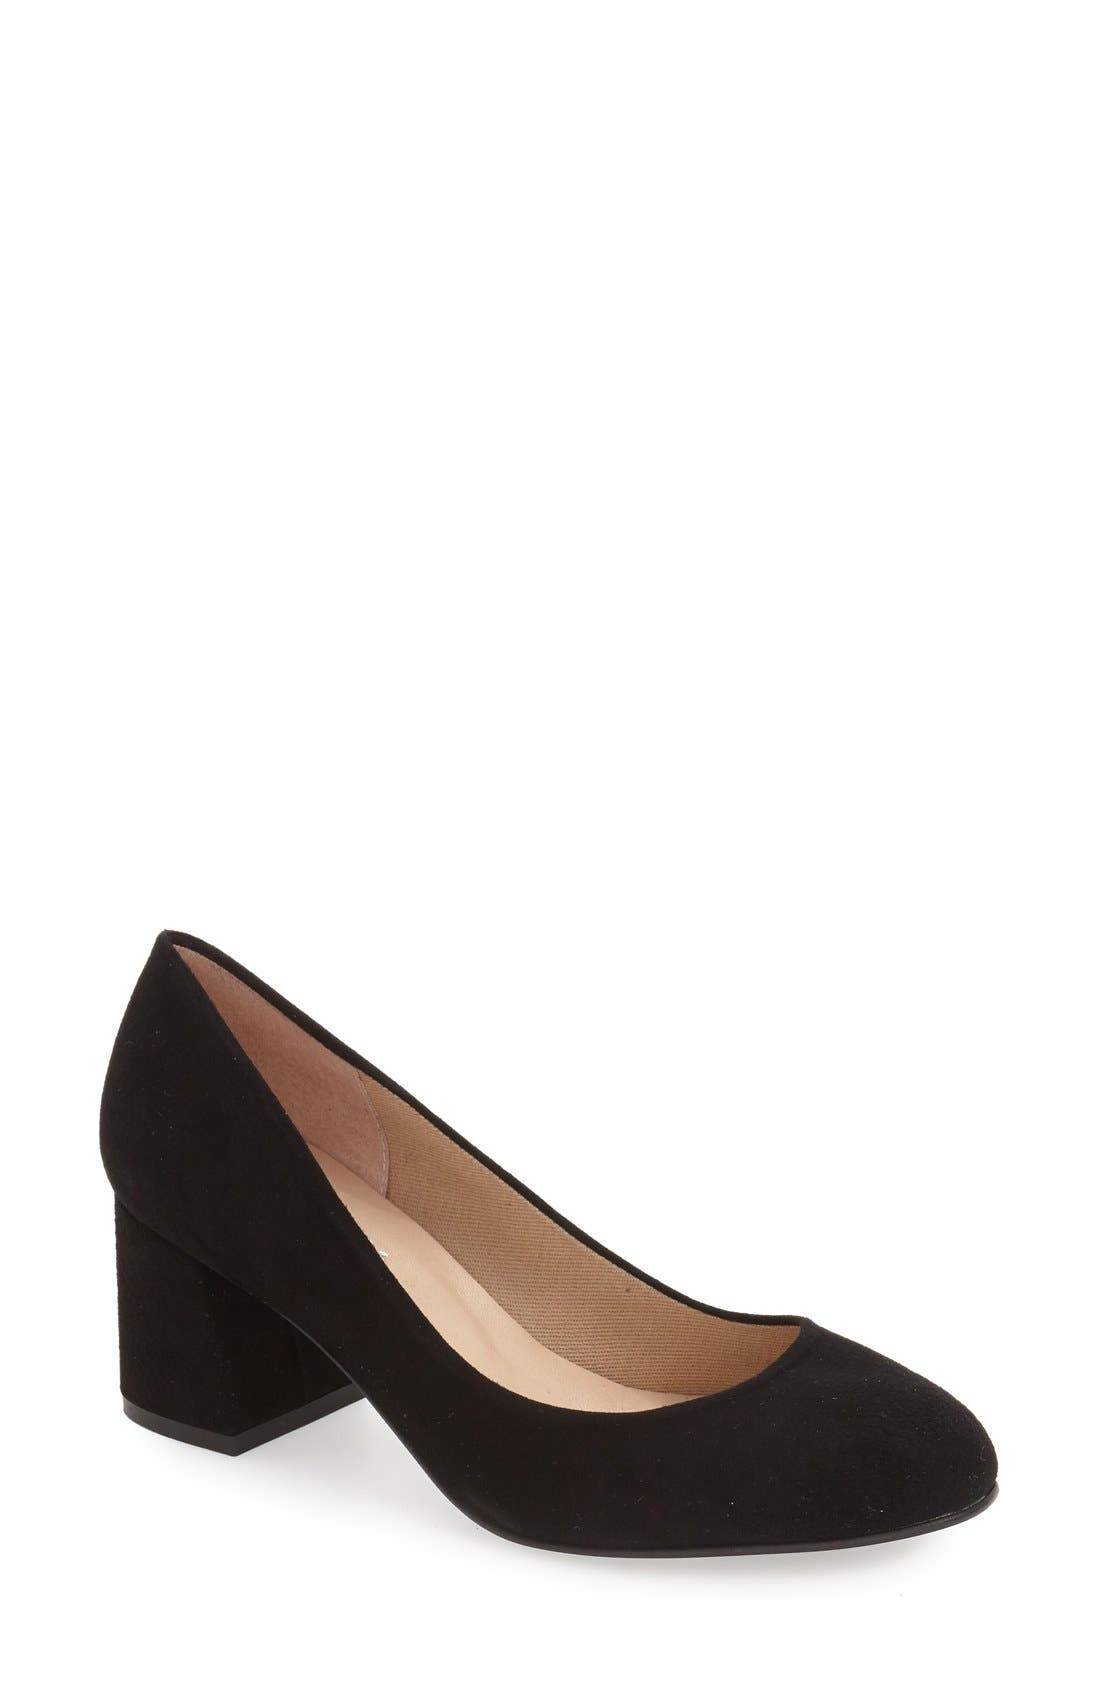 FRENCH SOLE,                             'Trance' Block Heel Pump,                             Main thumbnail 1, color,                             001